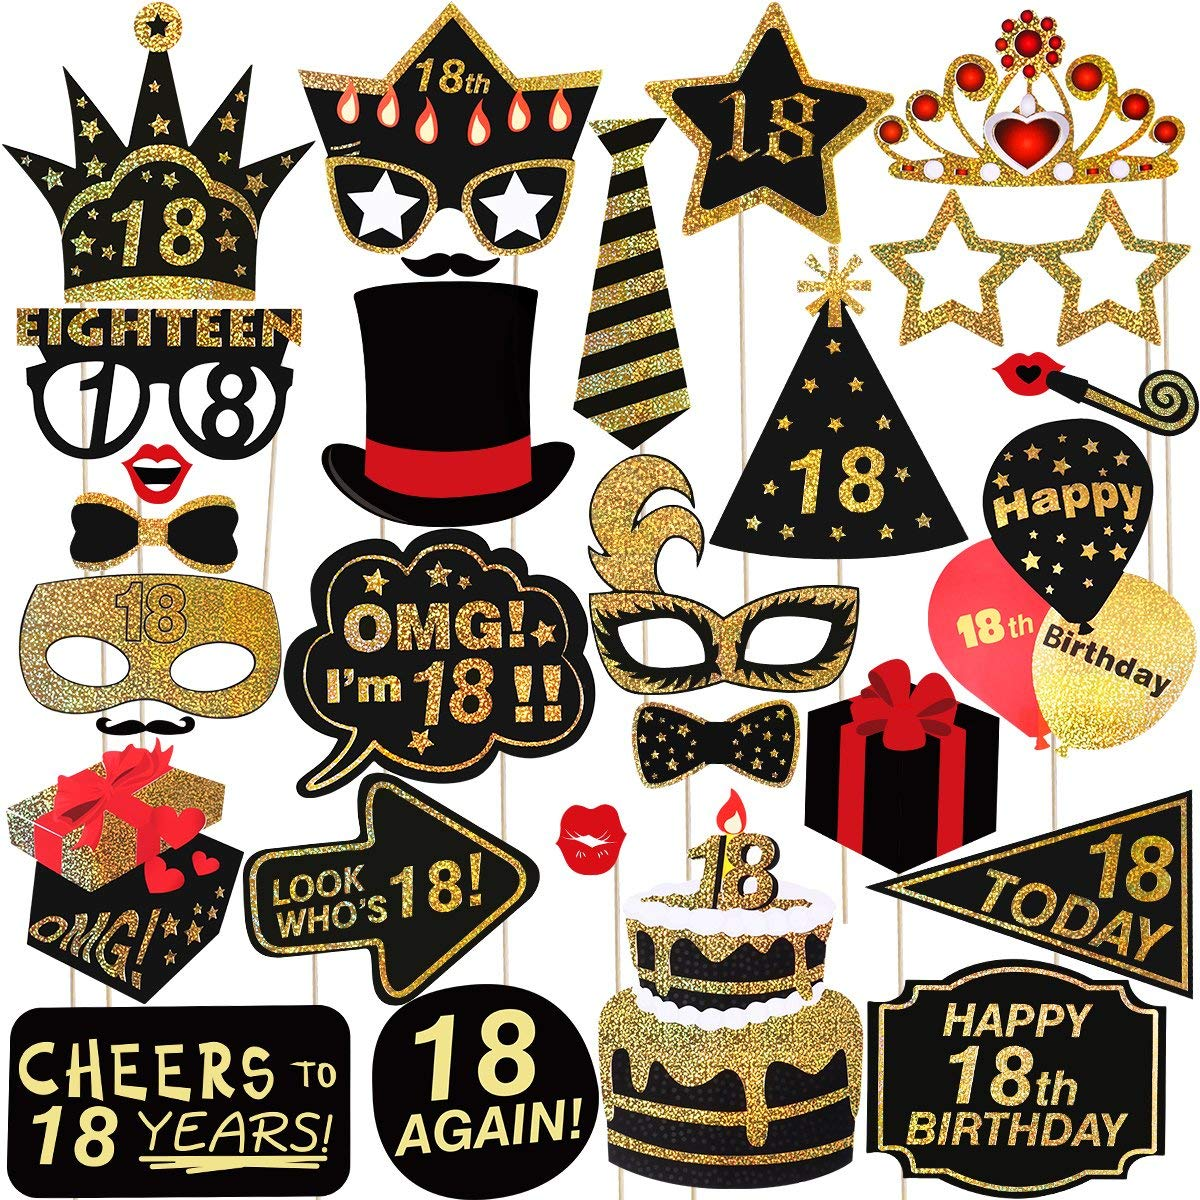 Pretyzoom 18th birthday photo booth props happy birthday party accessories supplies for photo booth parties glitter